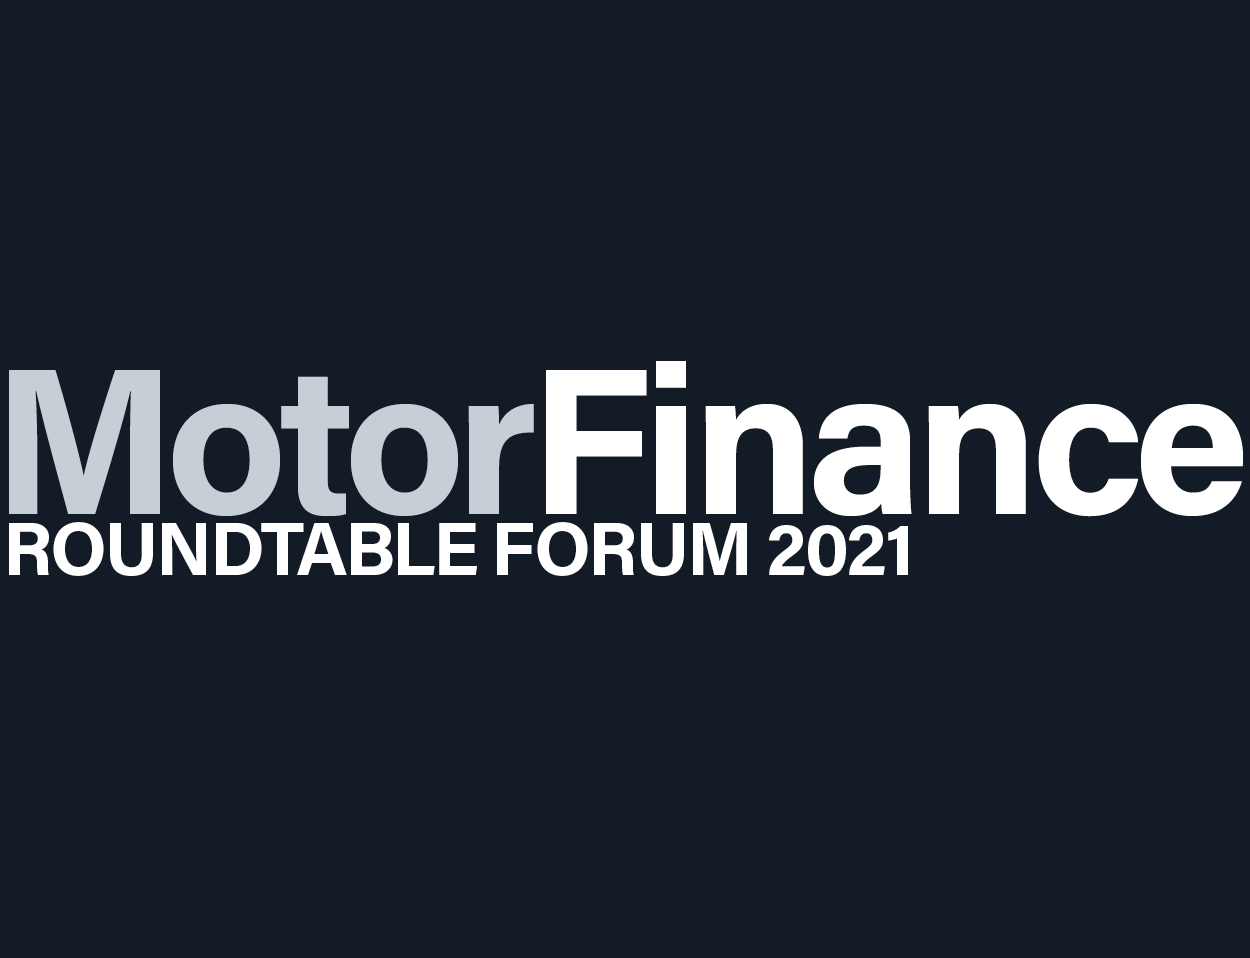 Motor Finance Roundtable Forum 2021